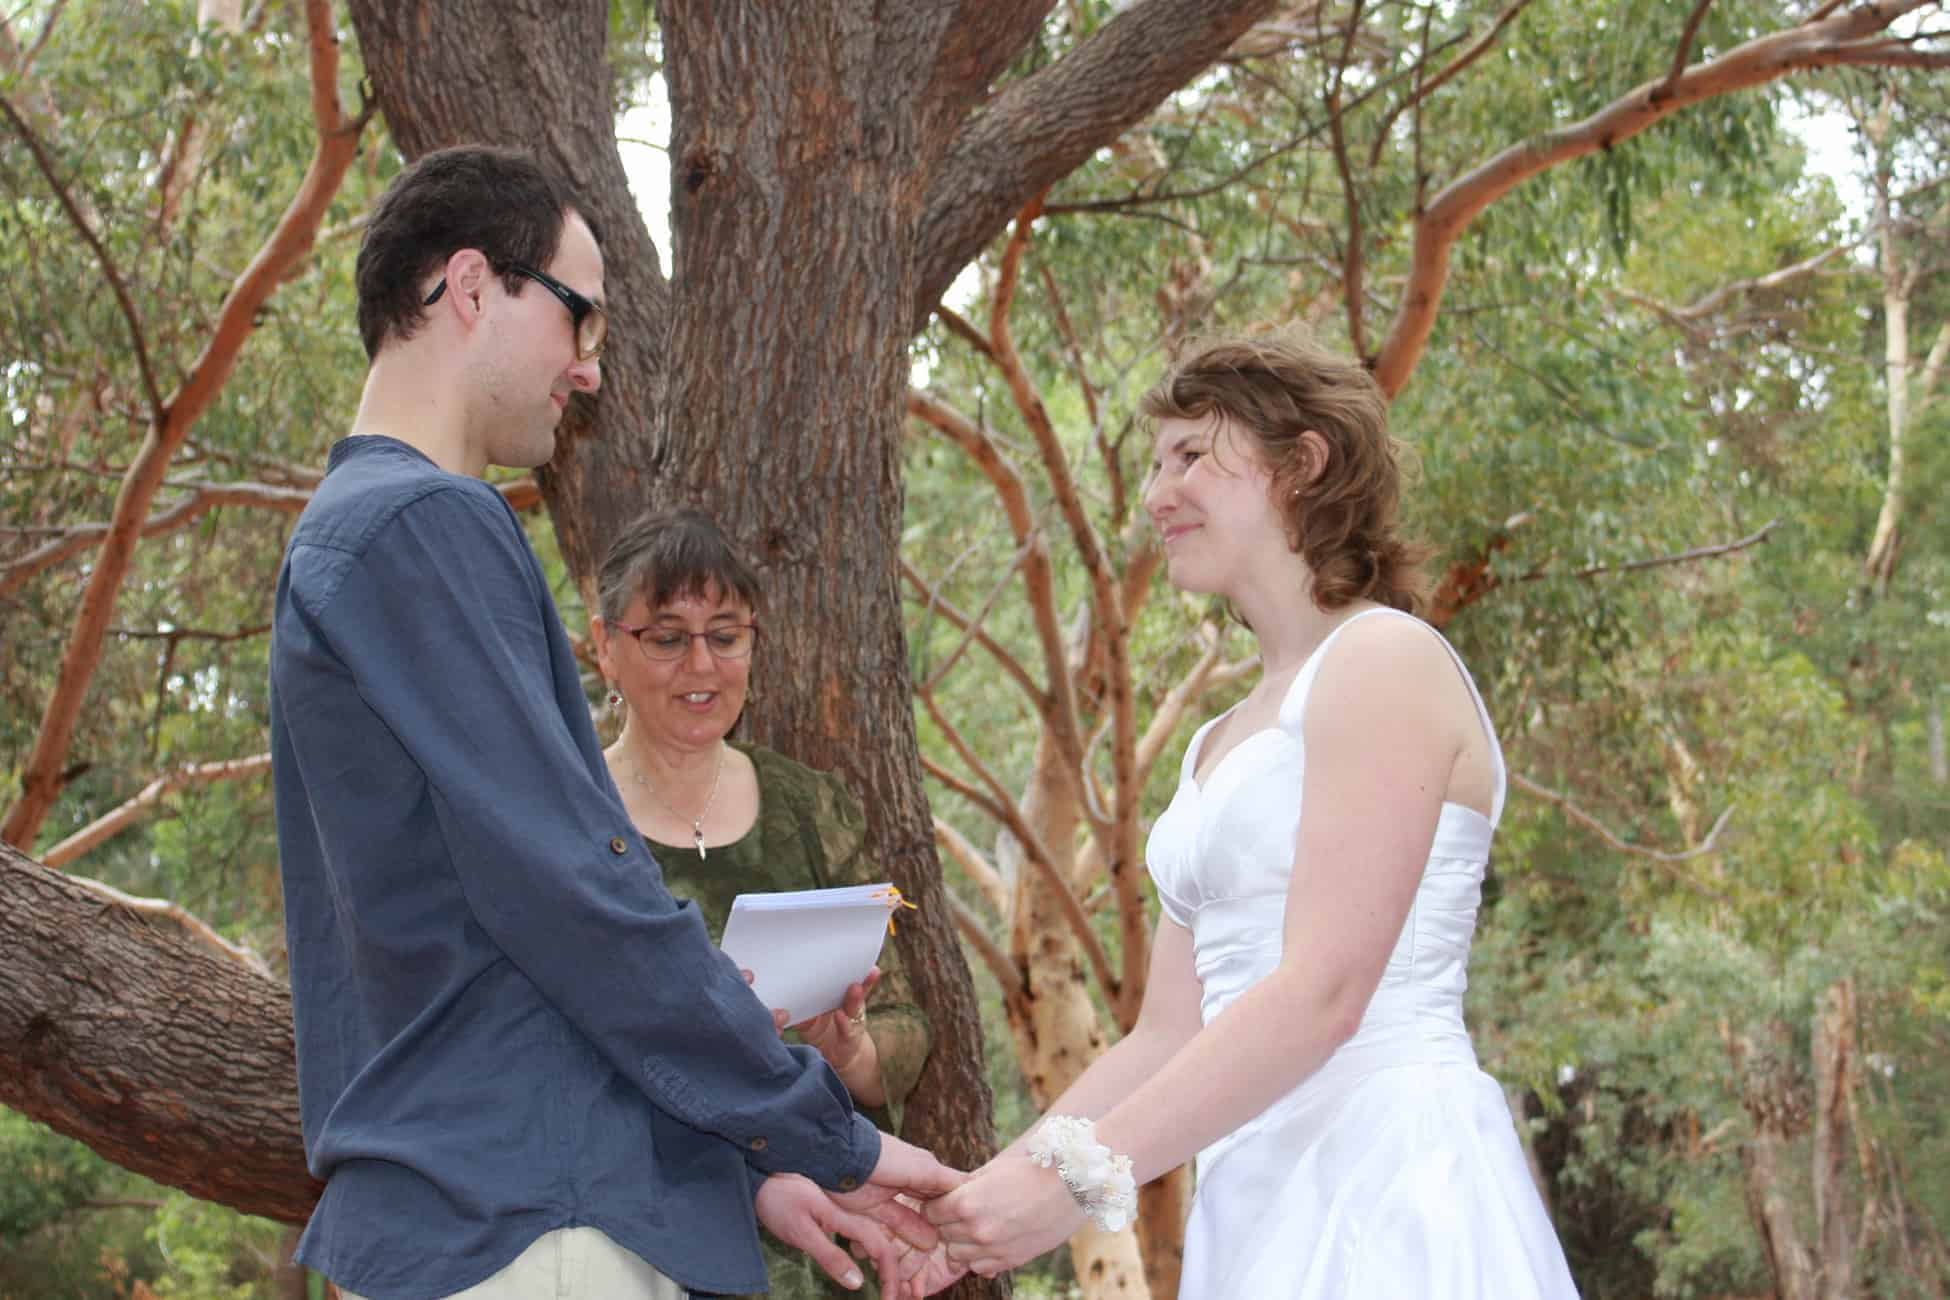 Marriage celebrant Ishara celebrates an outdoor wedding in the Perth hills, Western Australia